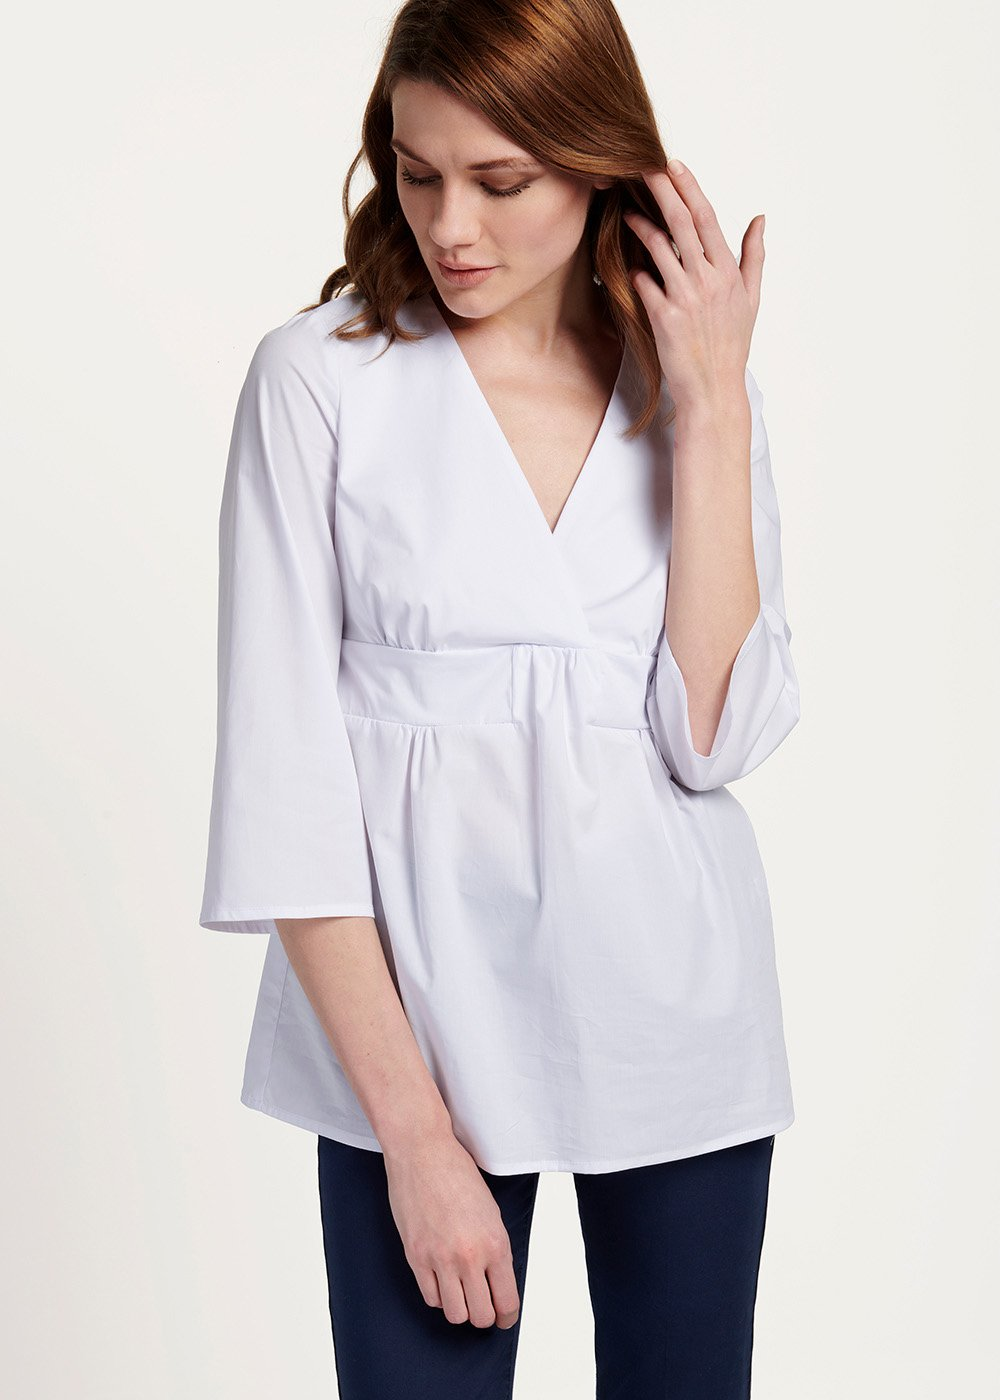 Cindy V-neck shirt - White - Woman